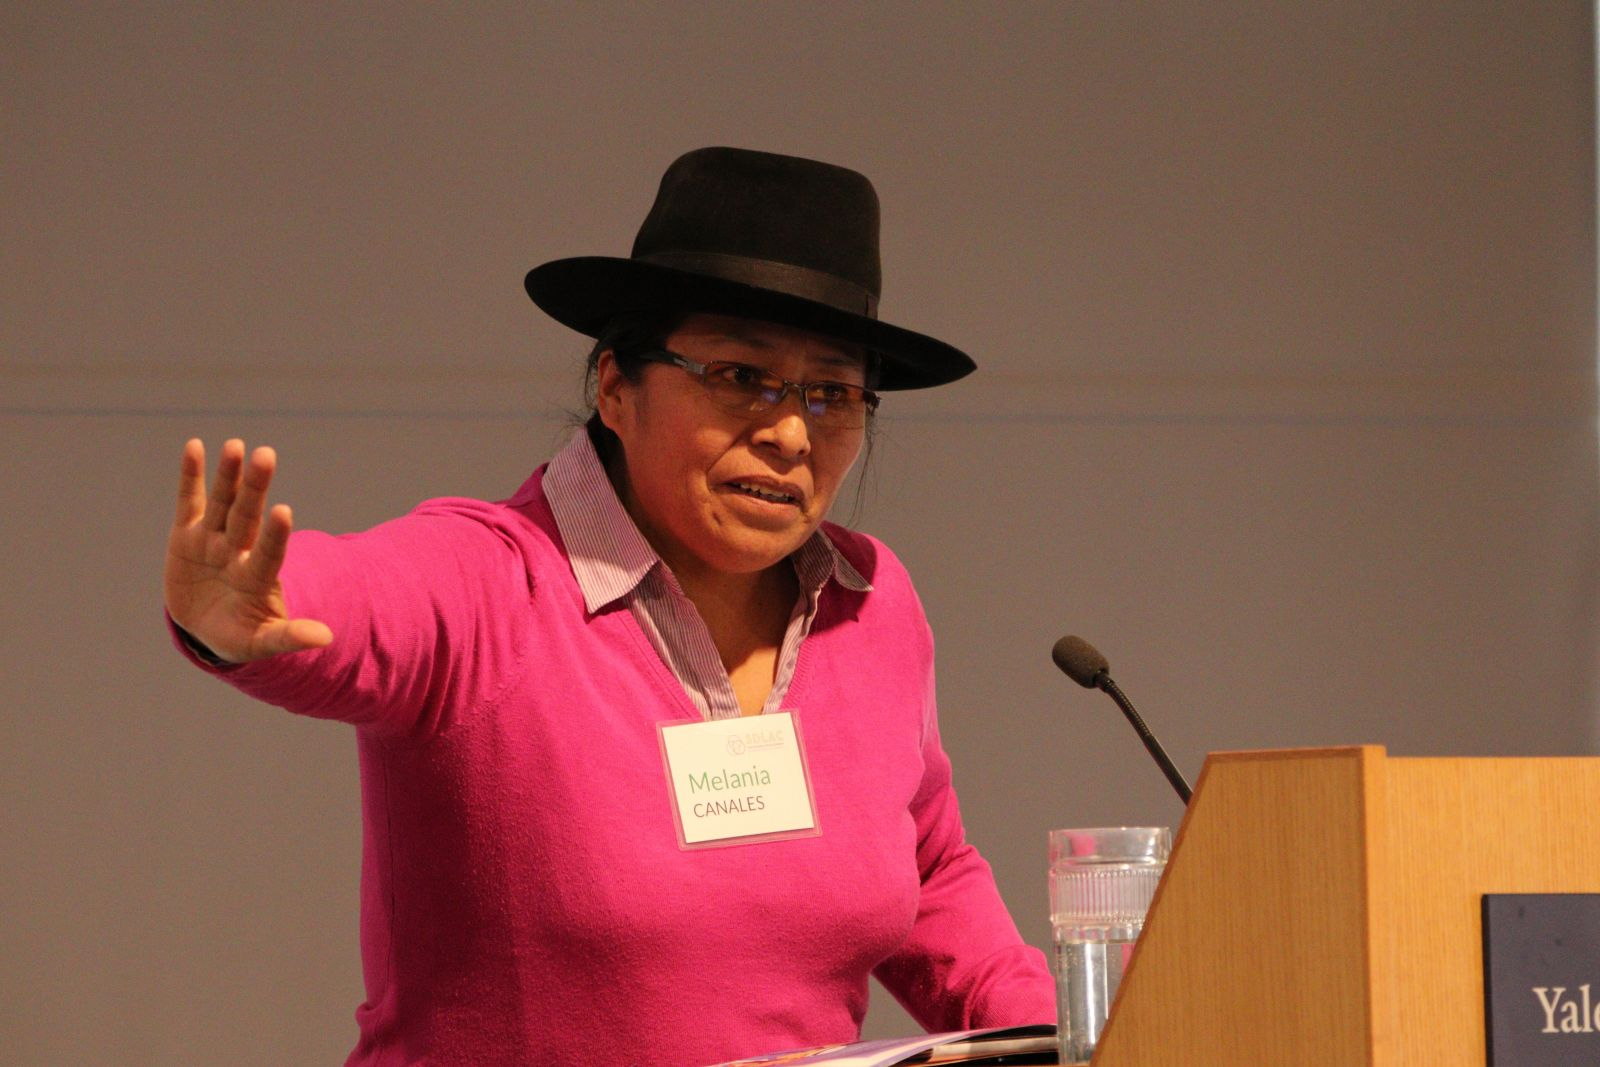 Melania Canales, Quechua Peruvian woman, Vice-President at ONAMIAP, shared lessons from her more than 20 years of experience working on capacity building, empowerment and female representation within indigenous communities.